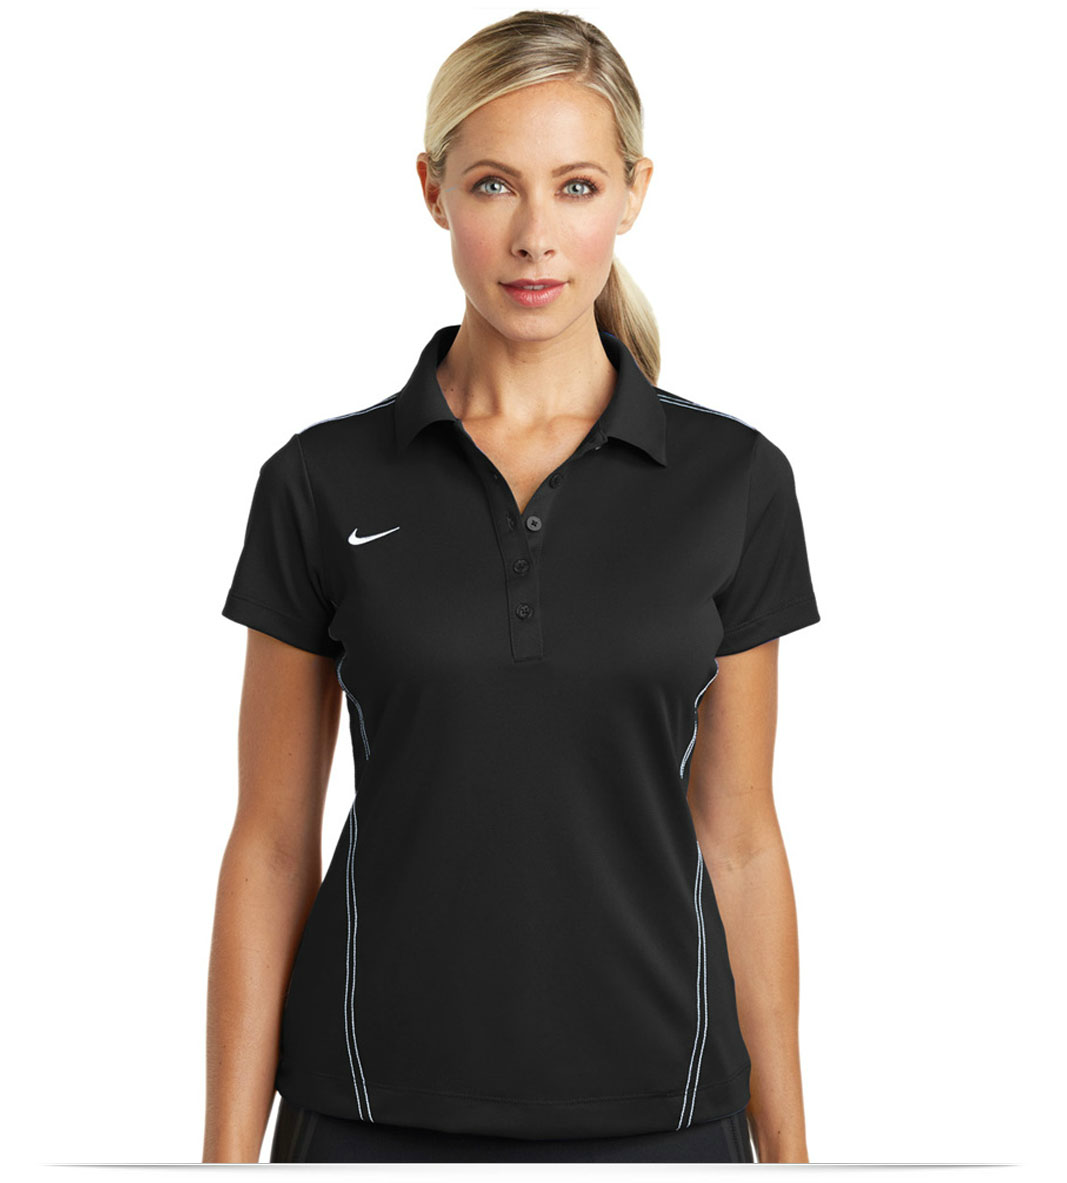 ced2ef28 Design Embroidered Women's Nike Golf Shirt Online at AllStar